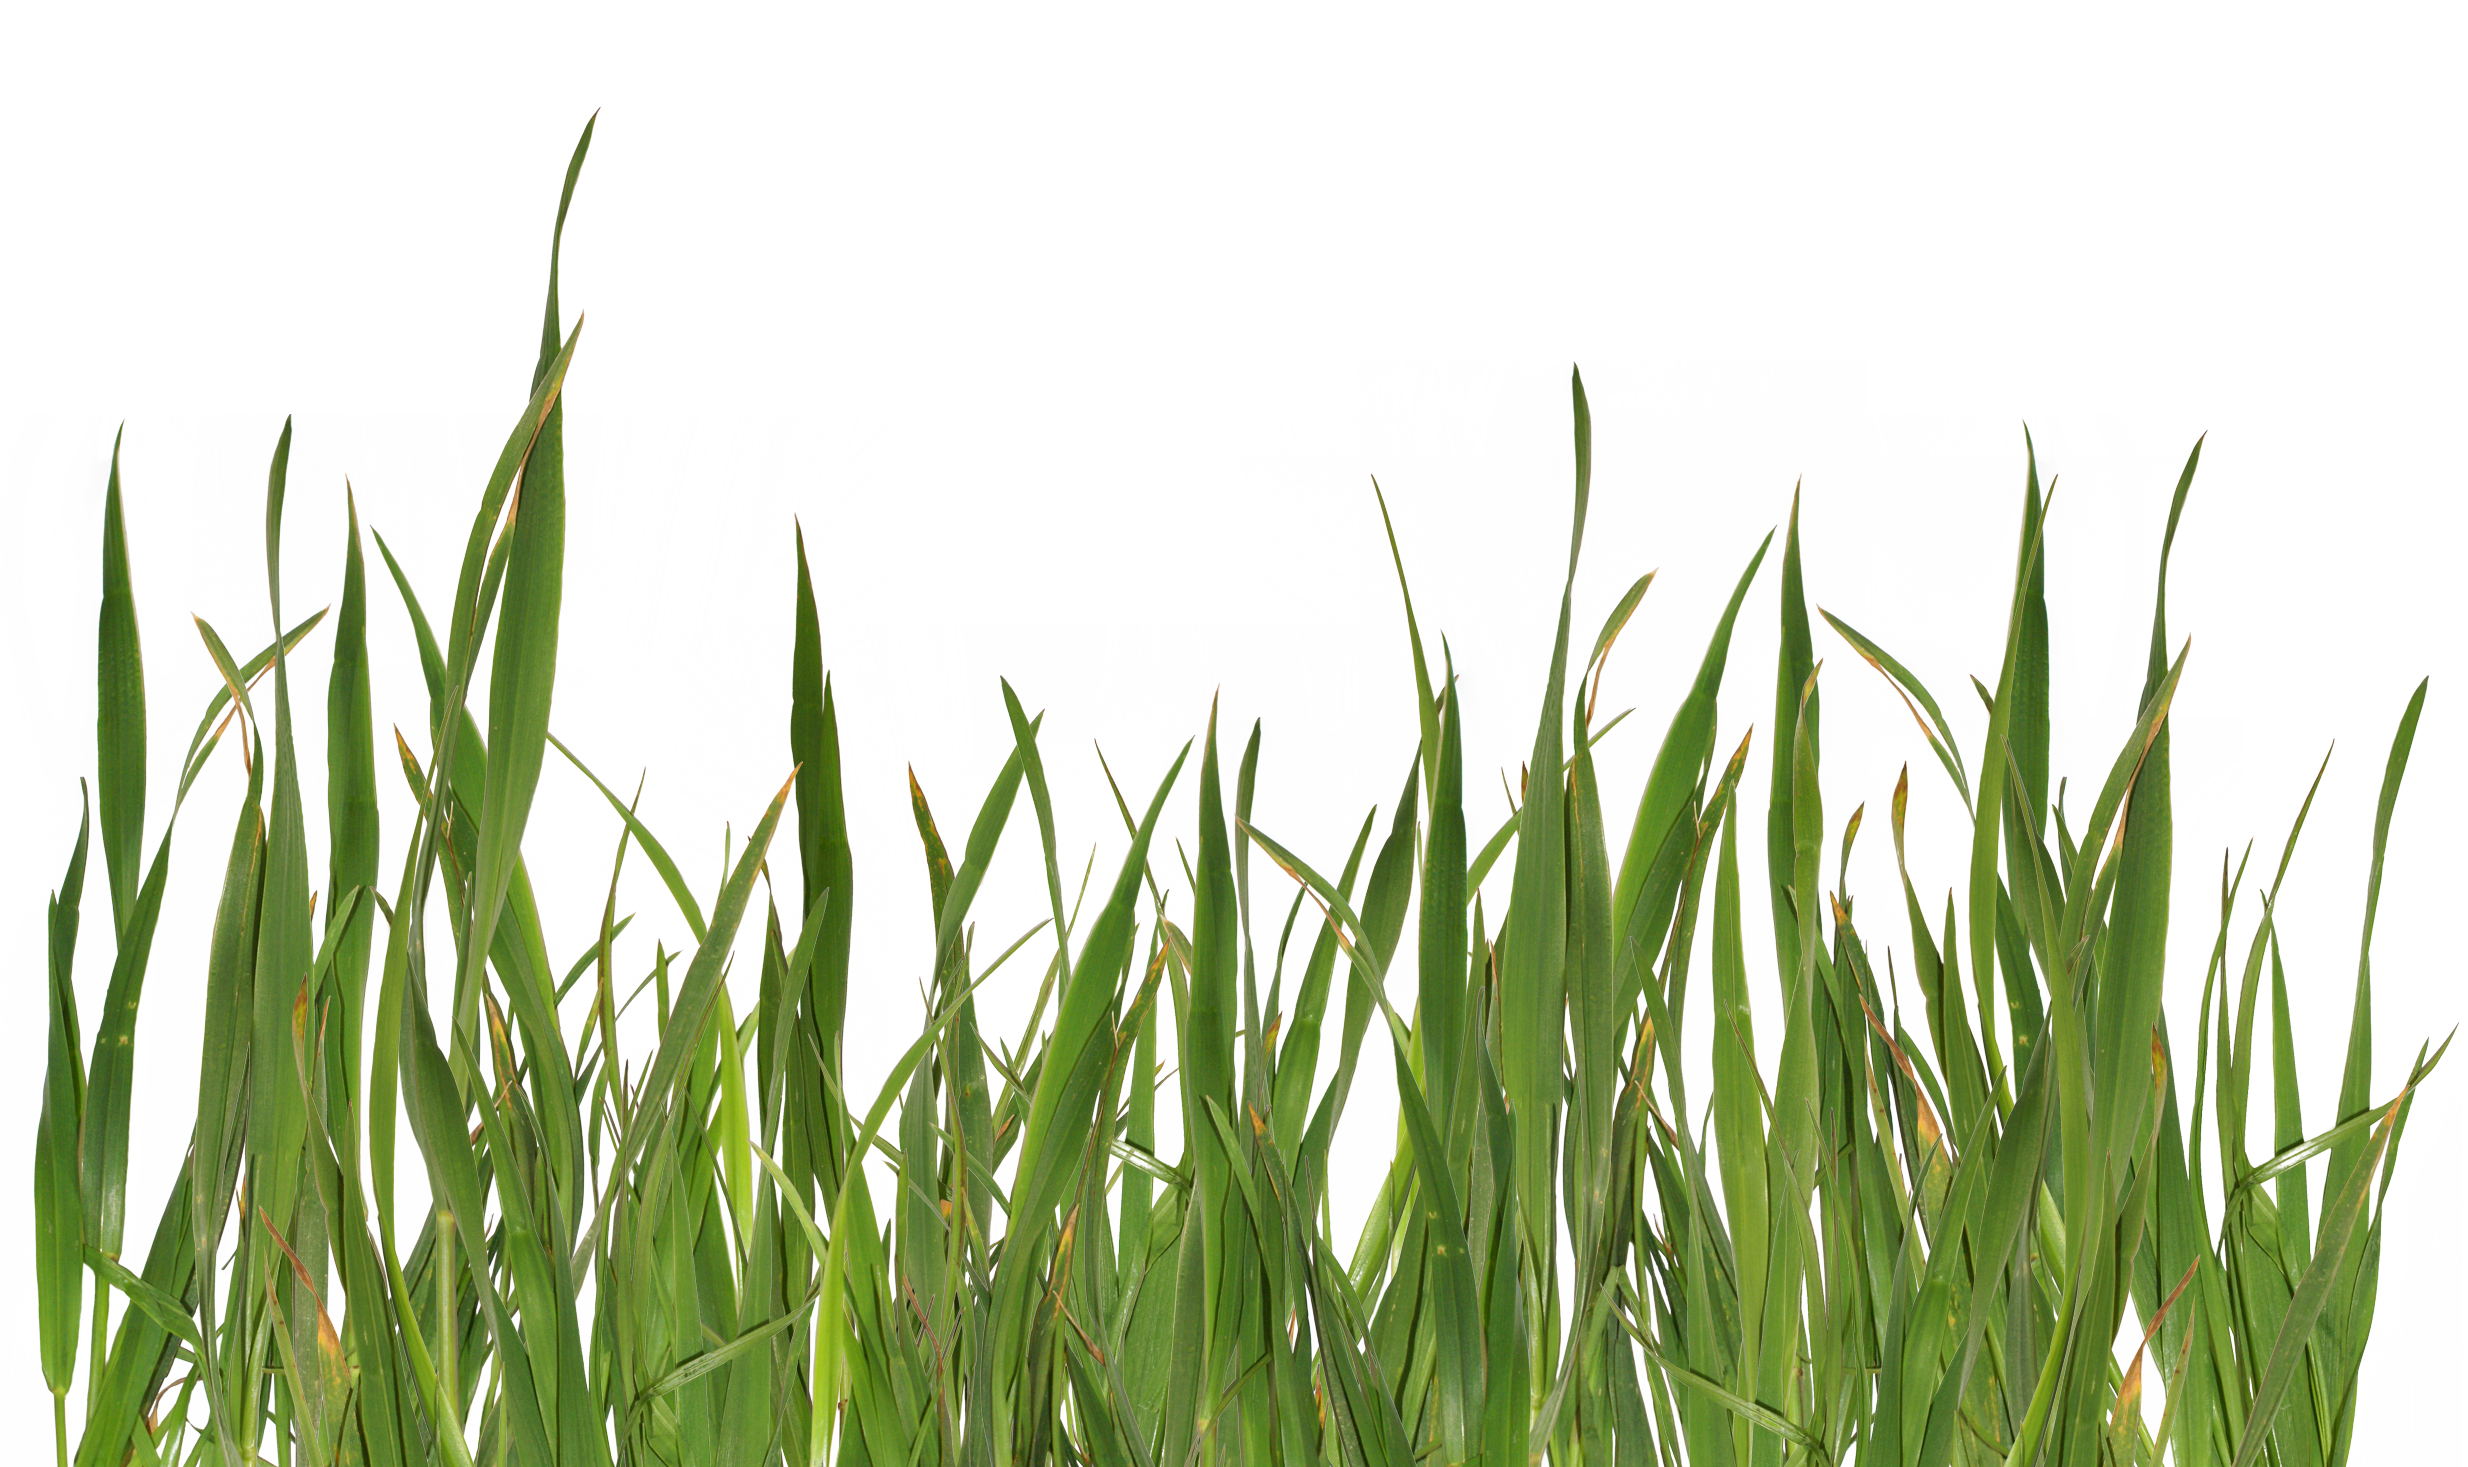 Grass Png Image image #4754